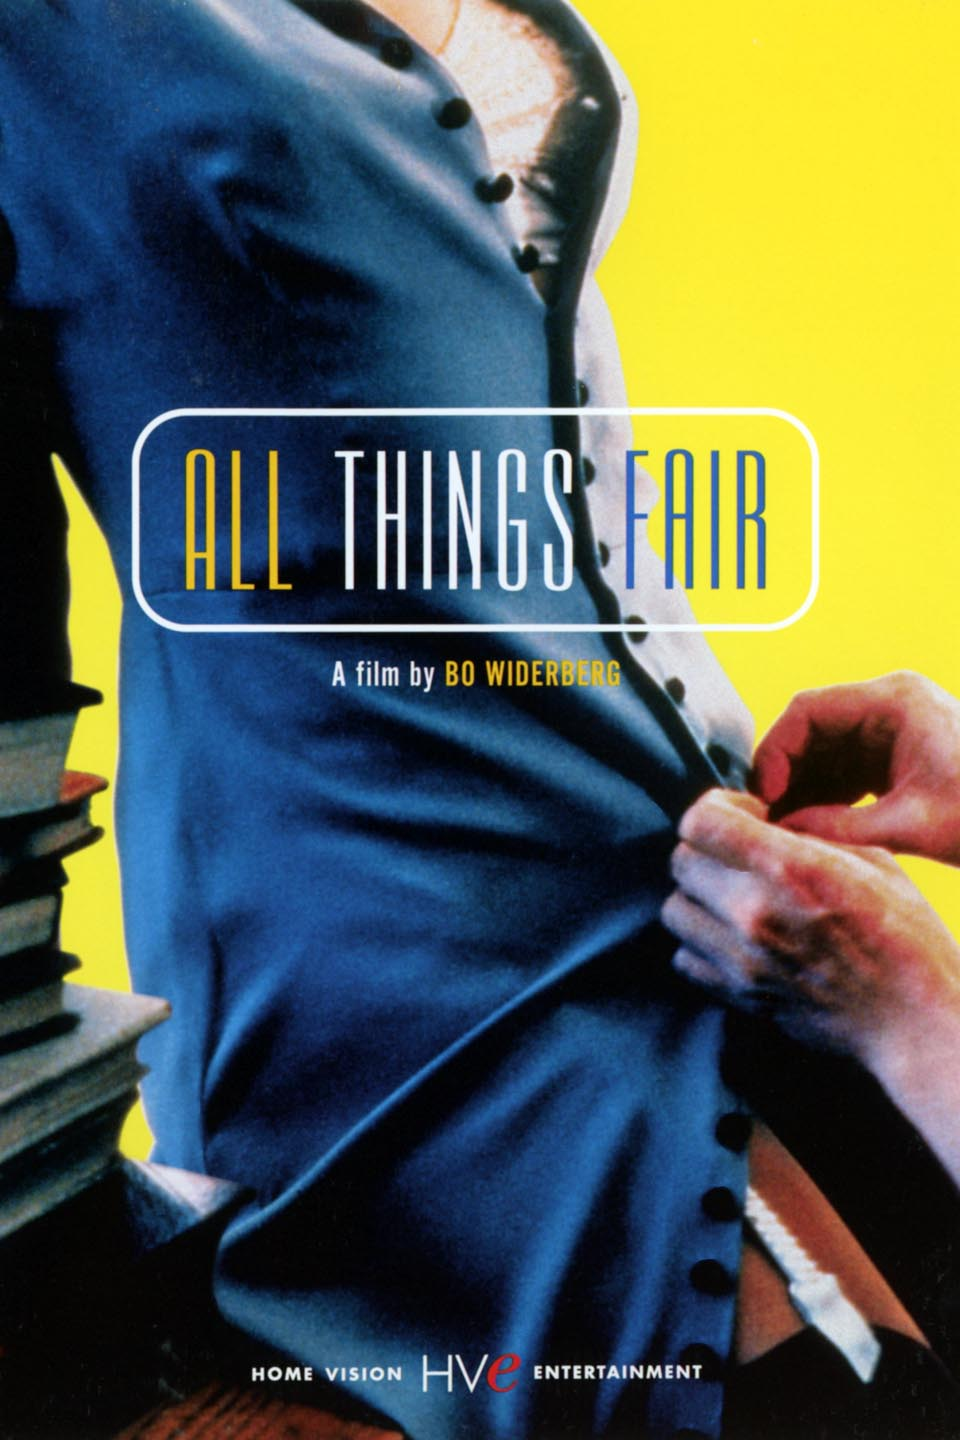 All Things Fair Movie Free Online full movies 2017: all thing fair watch online free